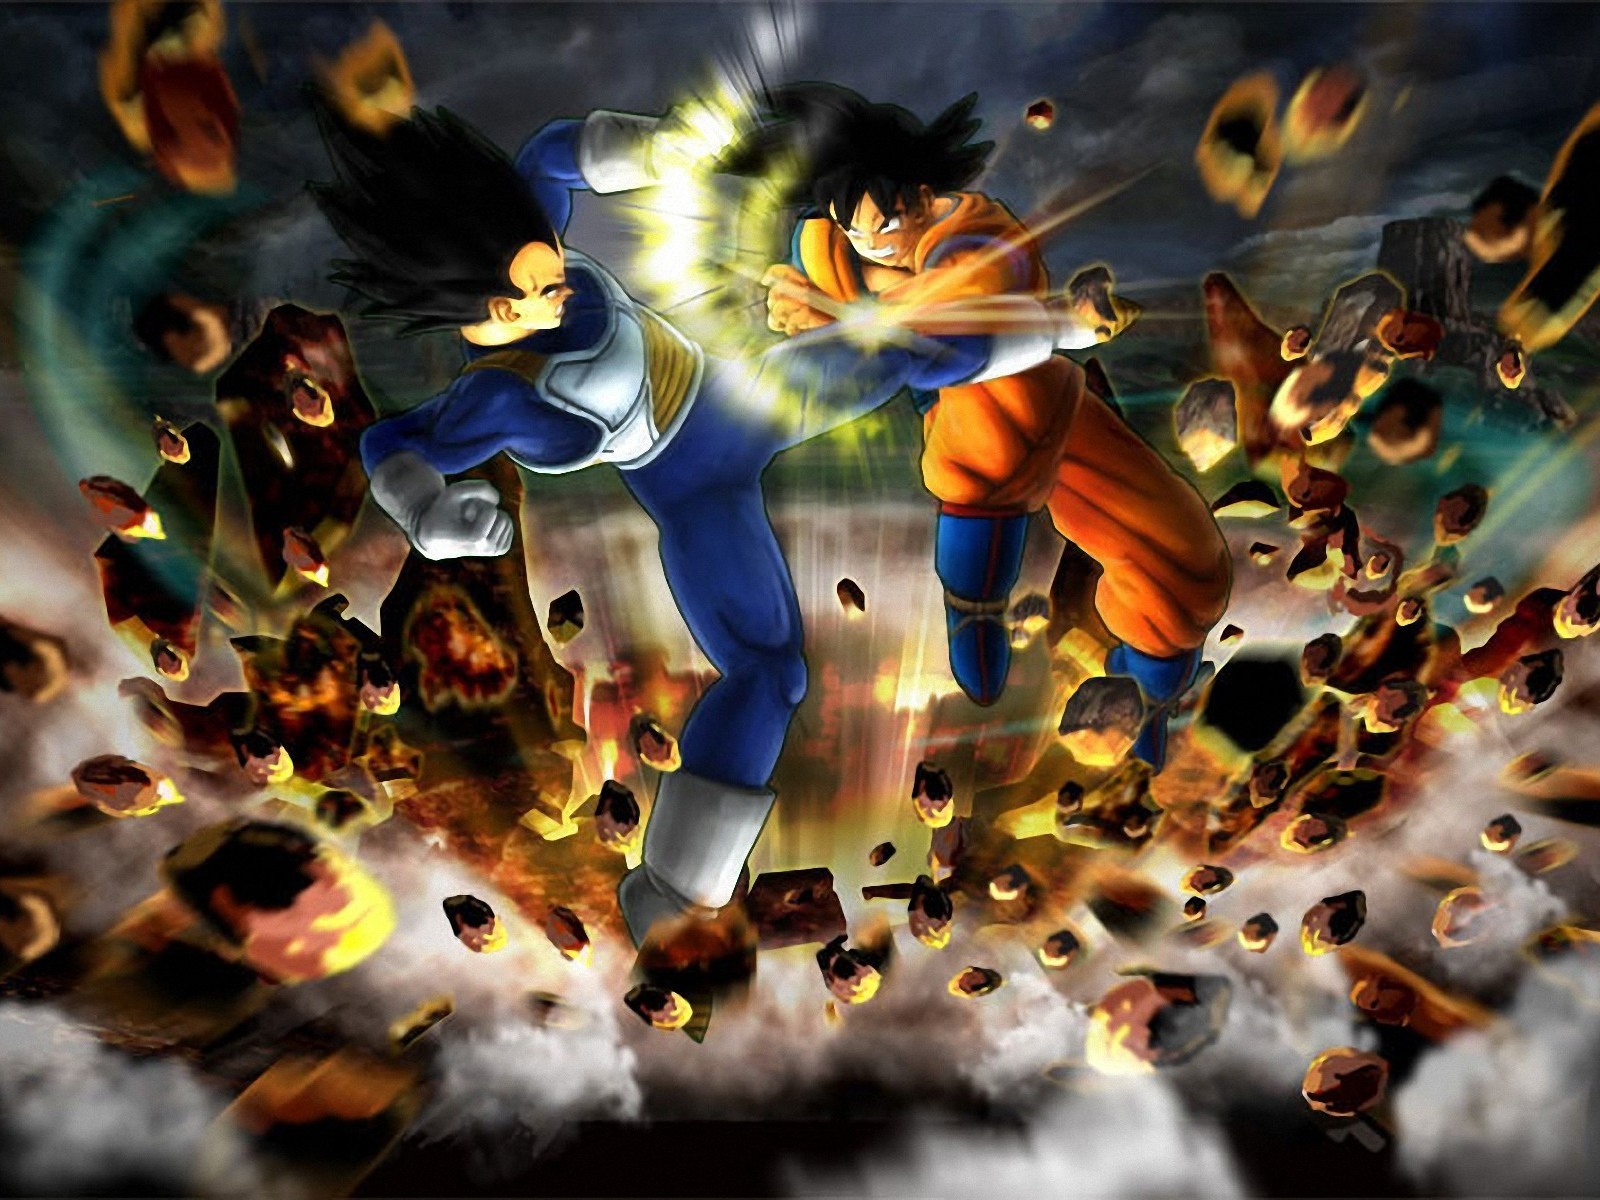 Dragon Ball Z Mania Images Crazzy Broly HD Wallpaper And Background Photos 1530 March 29 2012